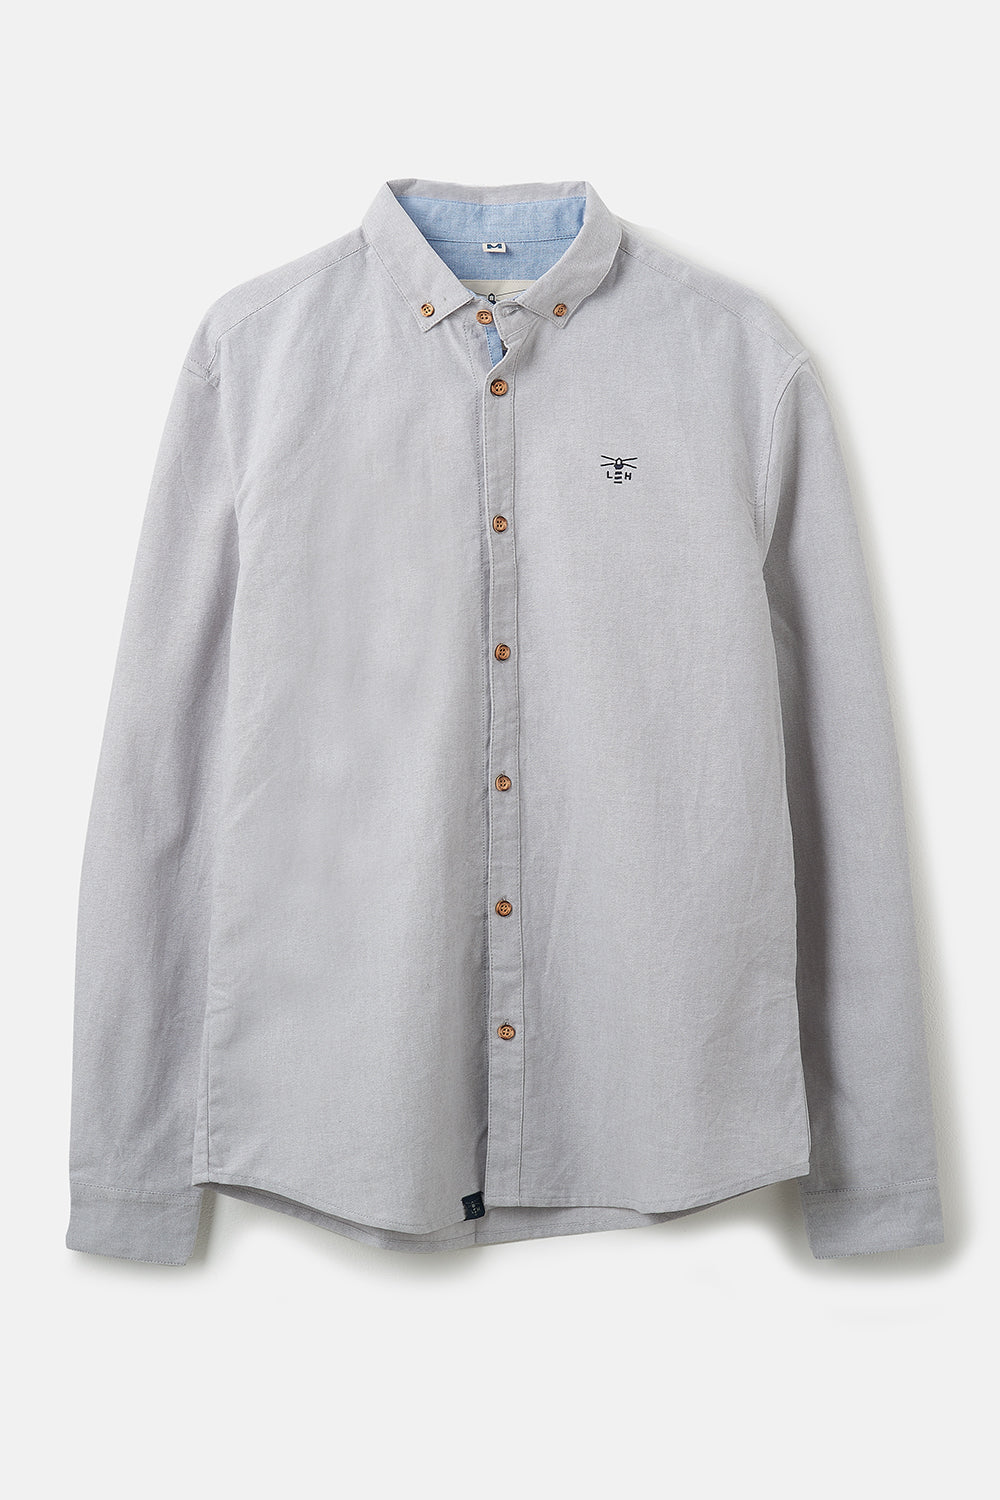 Tide Shirt - Grey Taupe